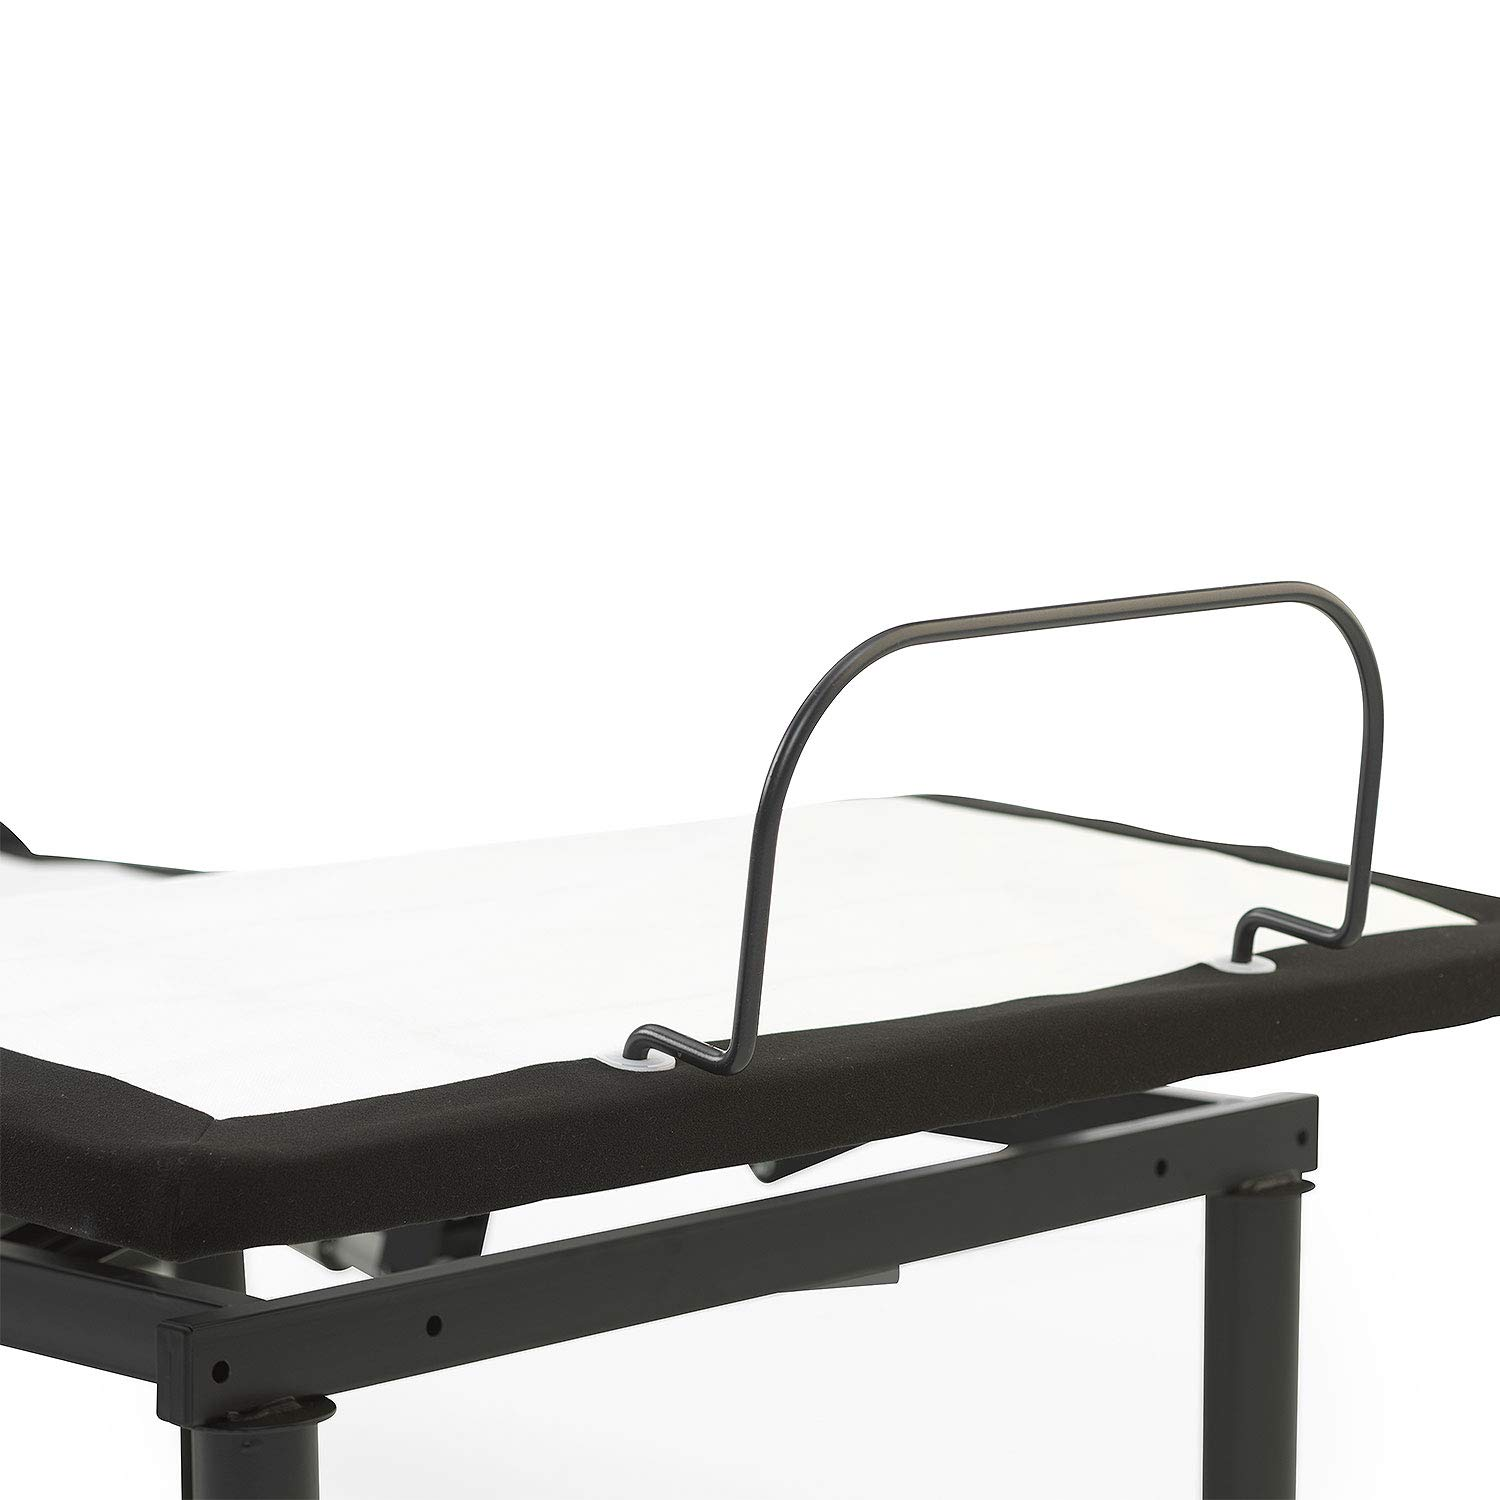 Twin XL zzZenSleep Adjustable Bed Frame with Independent Head and Foot Incline Fast and Easy No Tools Required Assembly with 10 Year Limited Warranty